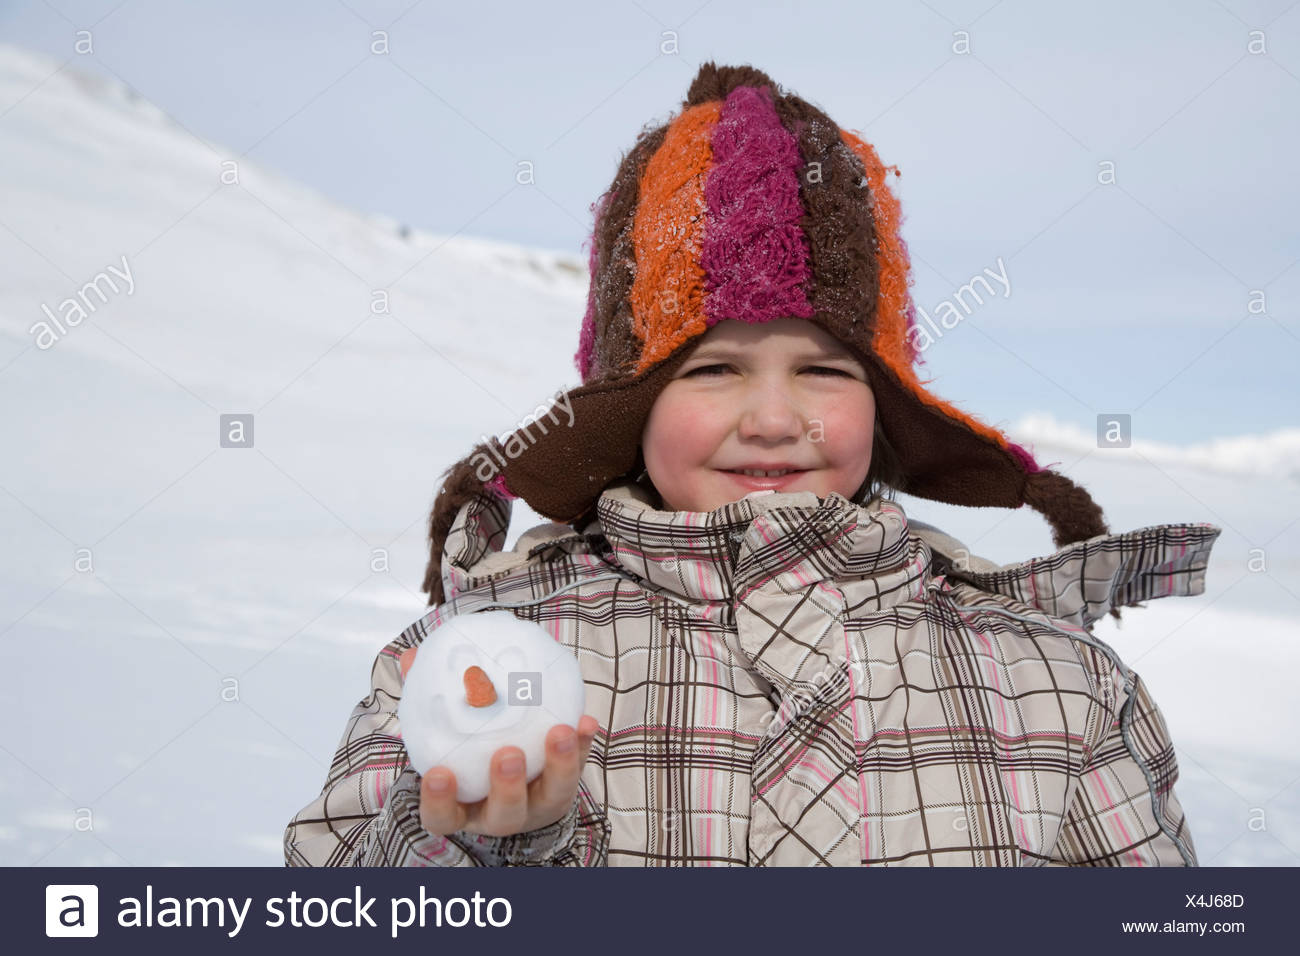 93d8244a198 Portrait of young girl holding snowball with smiley face and carrot nose -  Stock Image